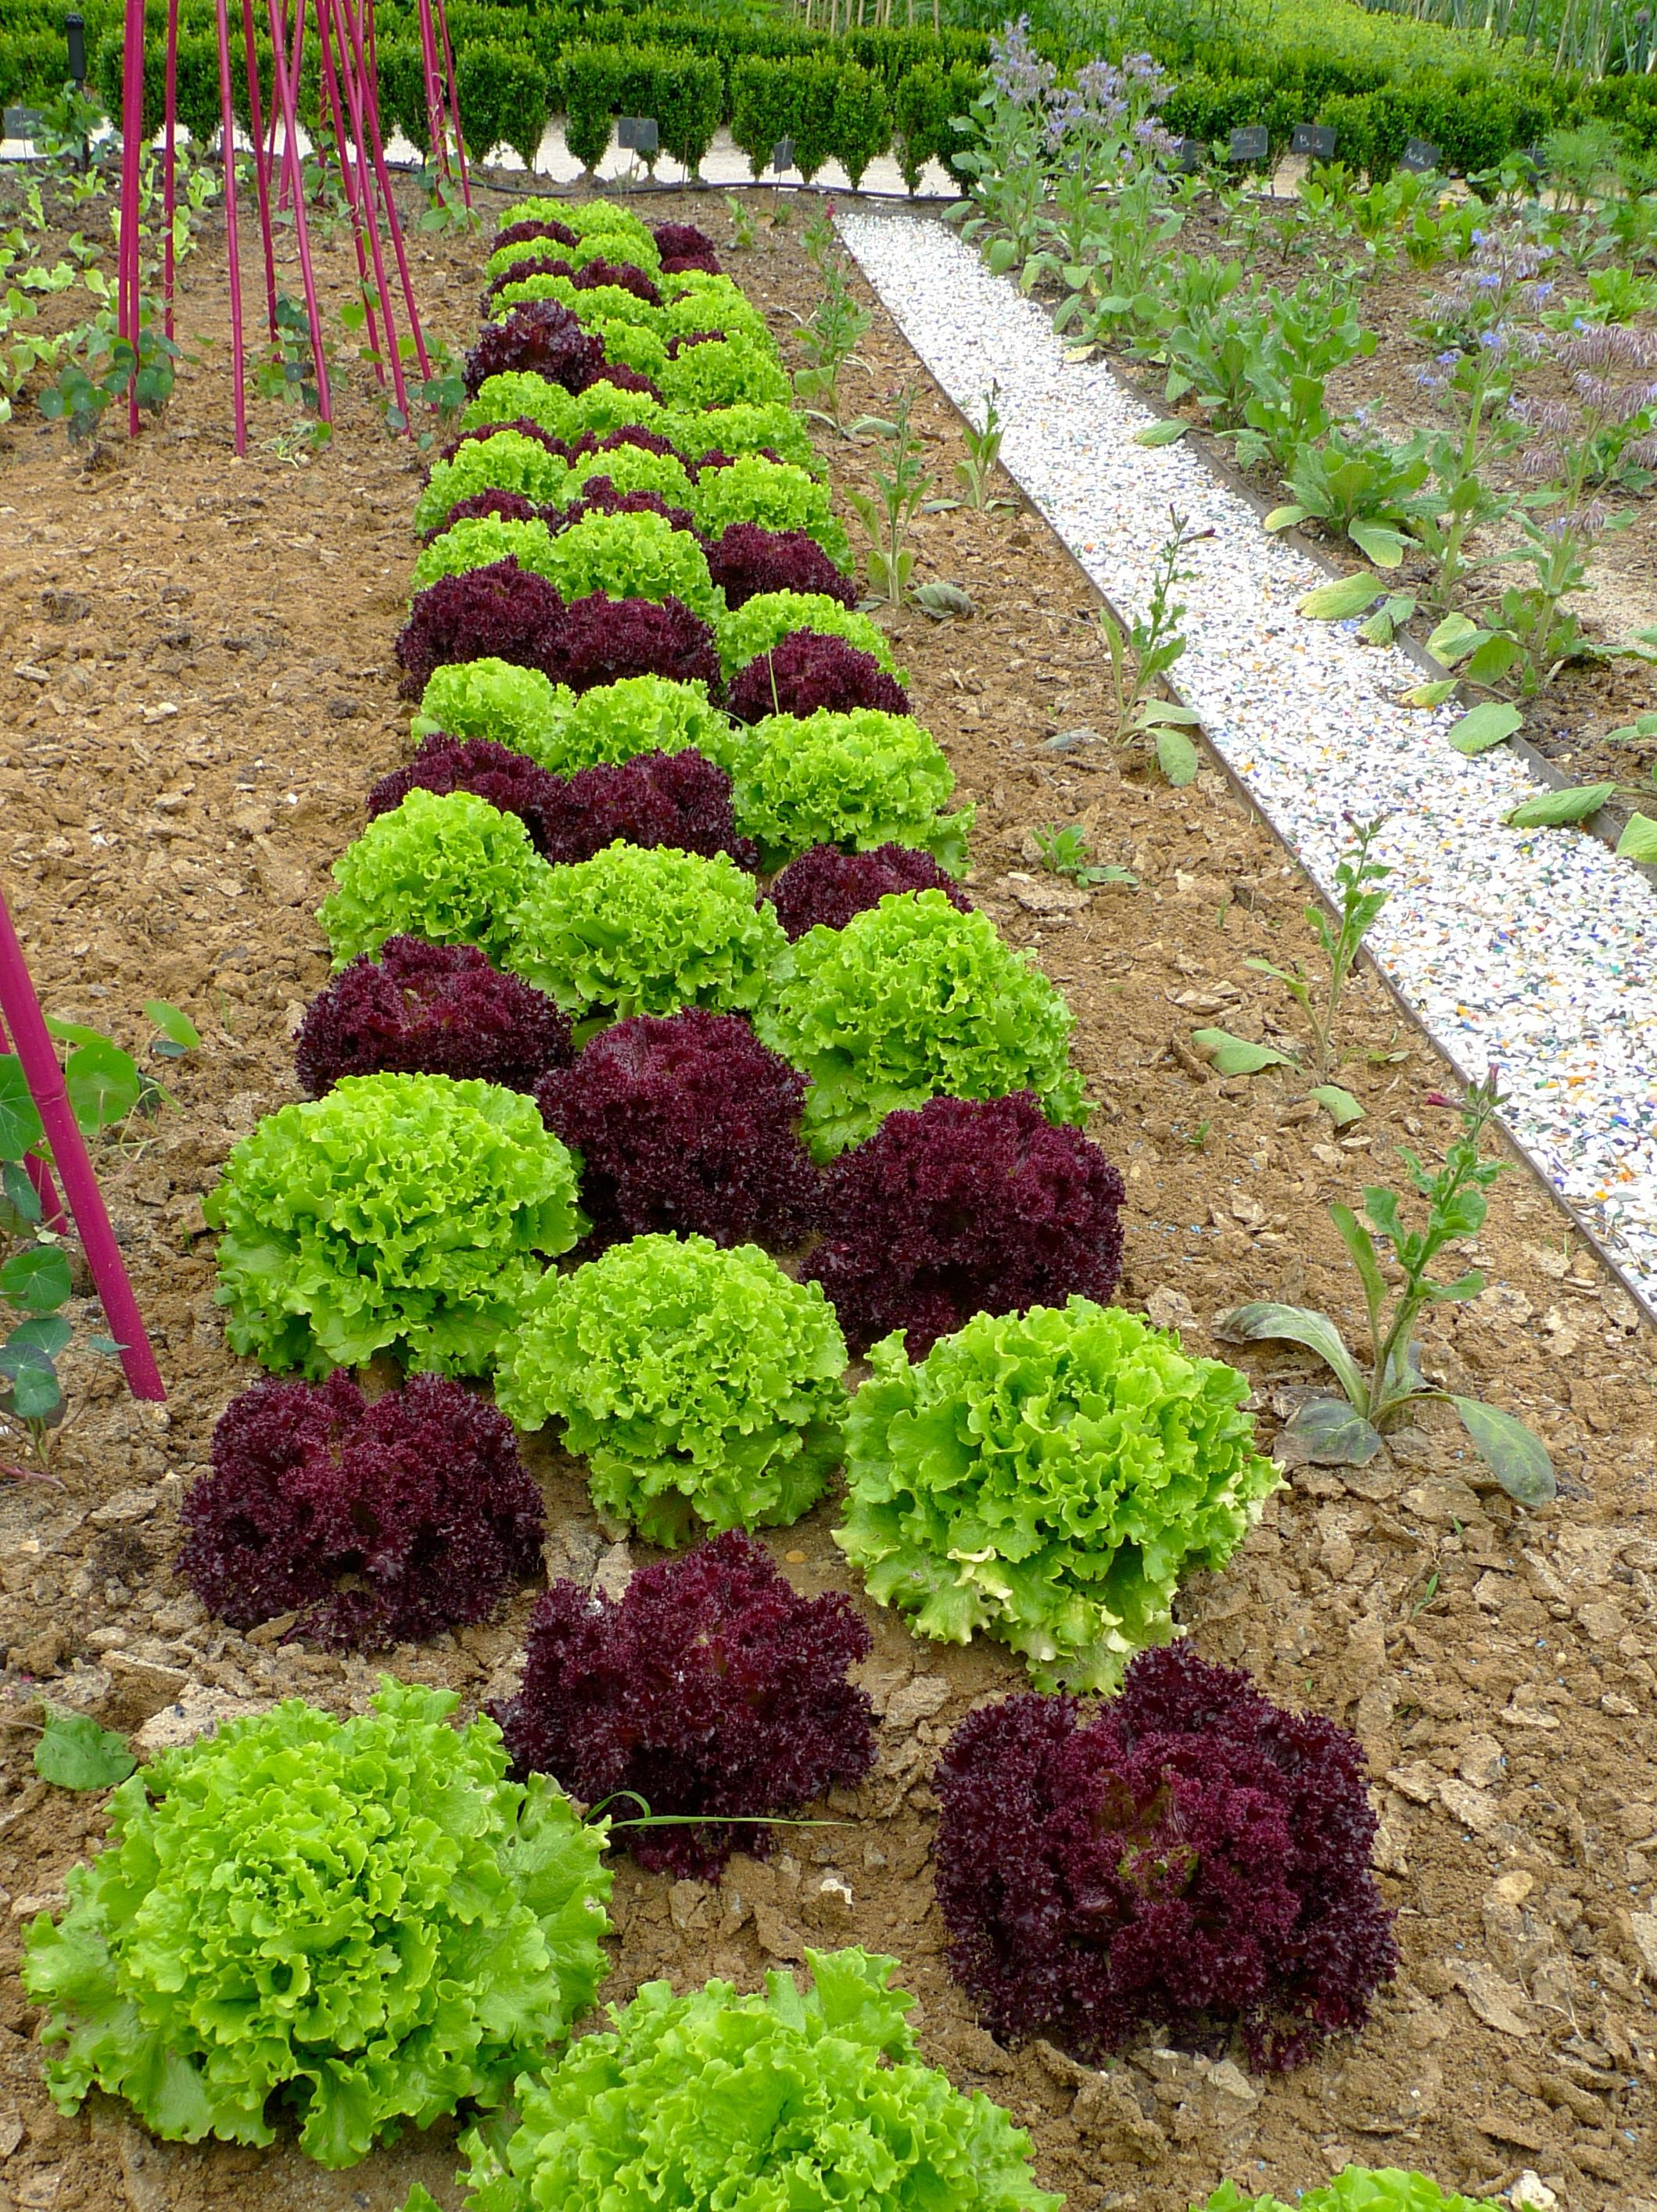 lettuces grown in diagonal rows forming a patchwork pattern